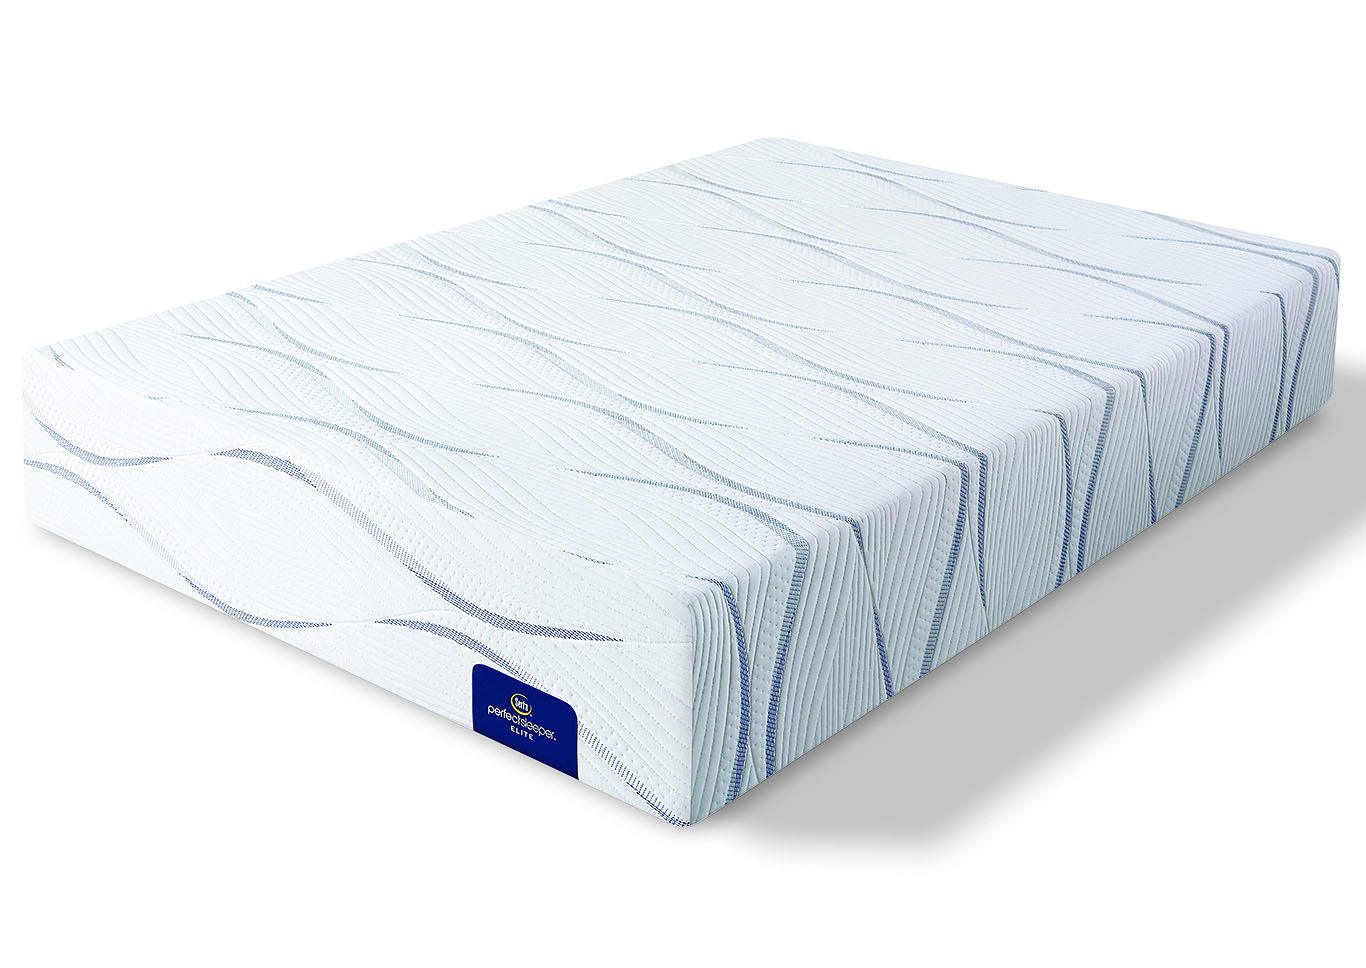 Southpoint II Twin XL Mattress,Huffman Koos